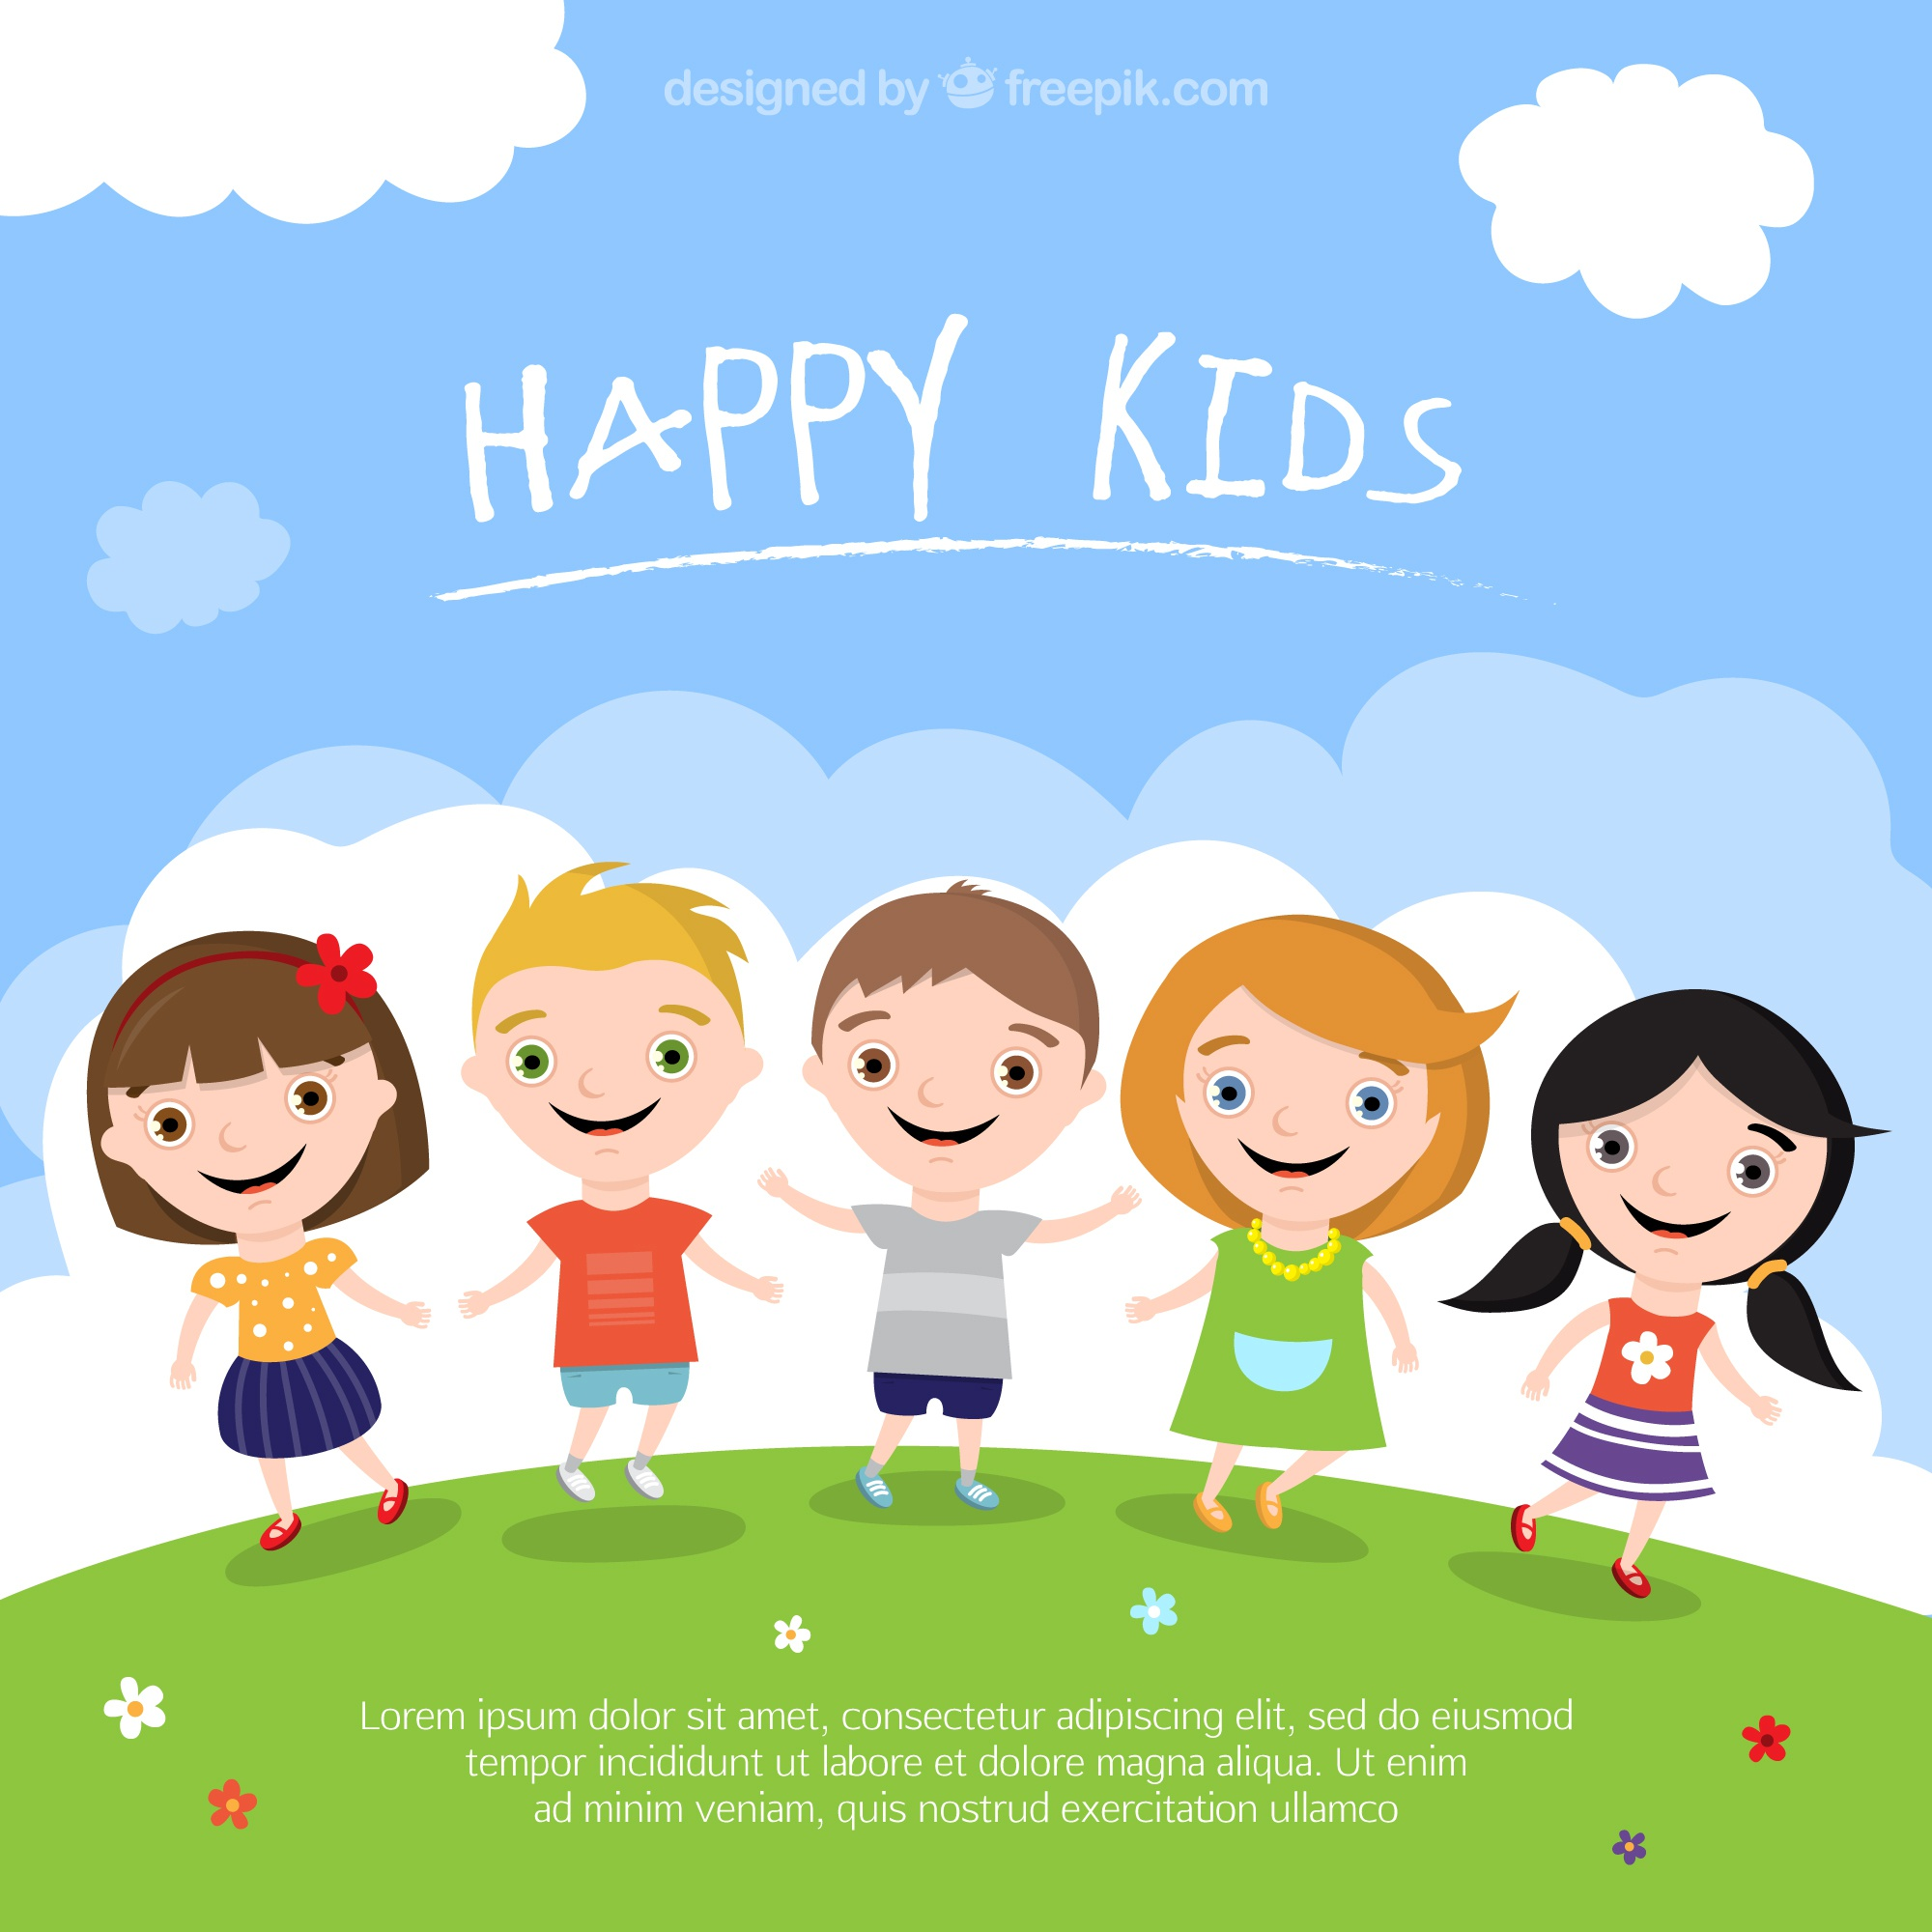 Happy kinderen illustratie